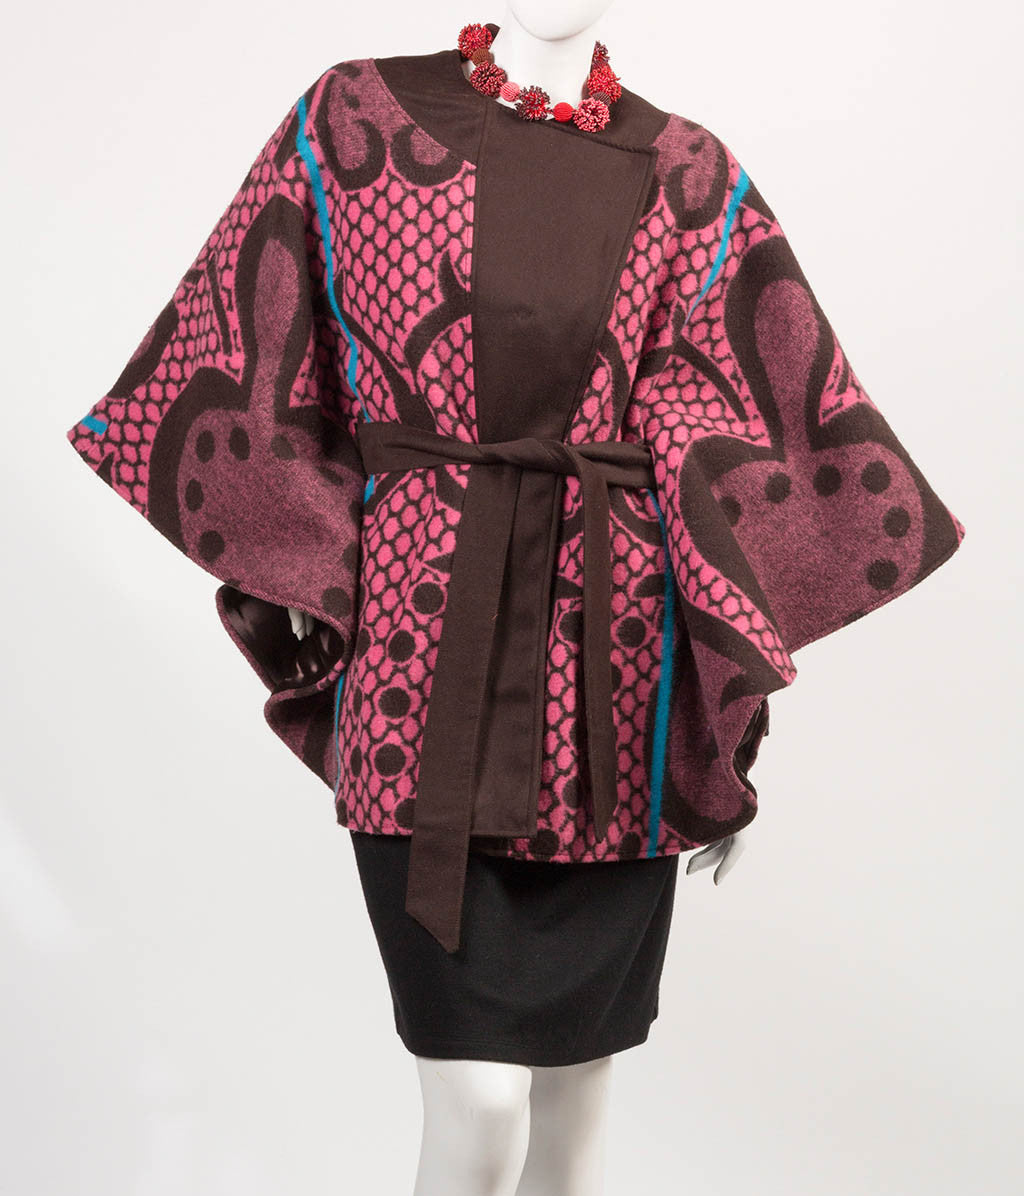 Kobo Ea Bohali Cape Coat (Rose) - Inspired Luxe